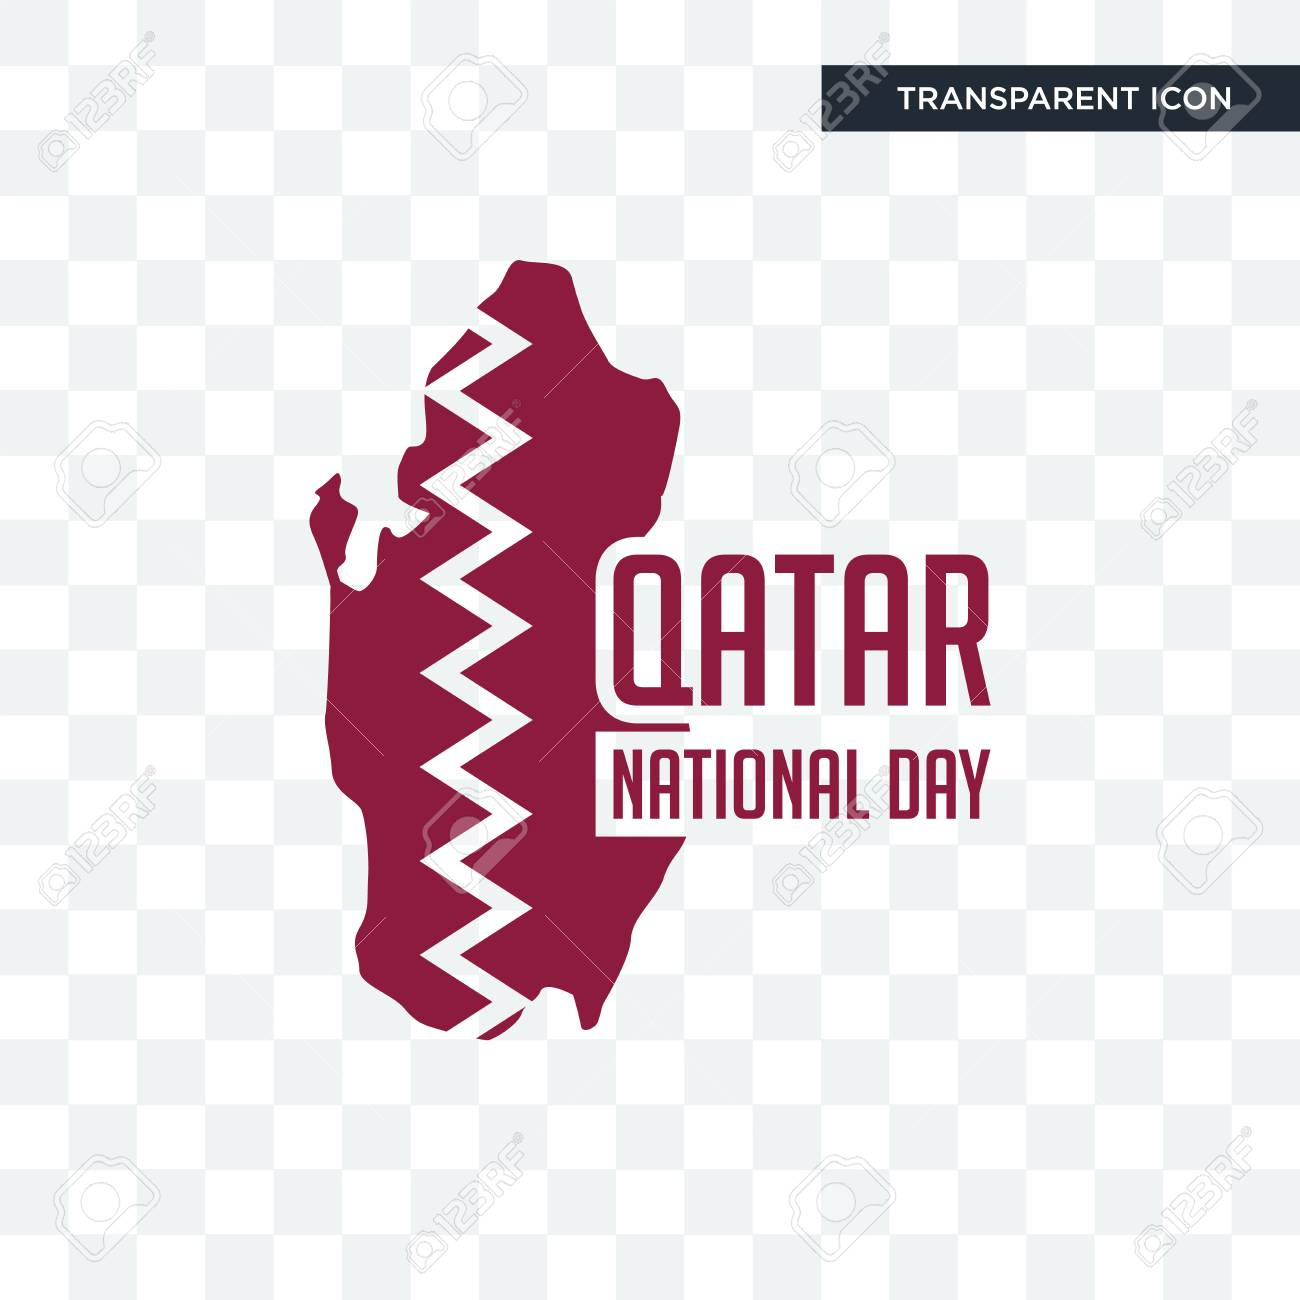 qatar national day vector icon isolated on transparent background,